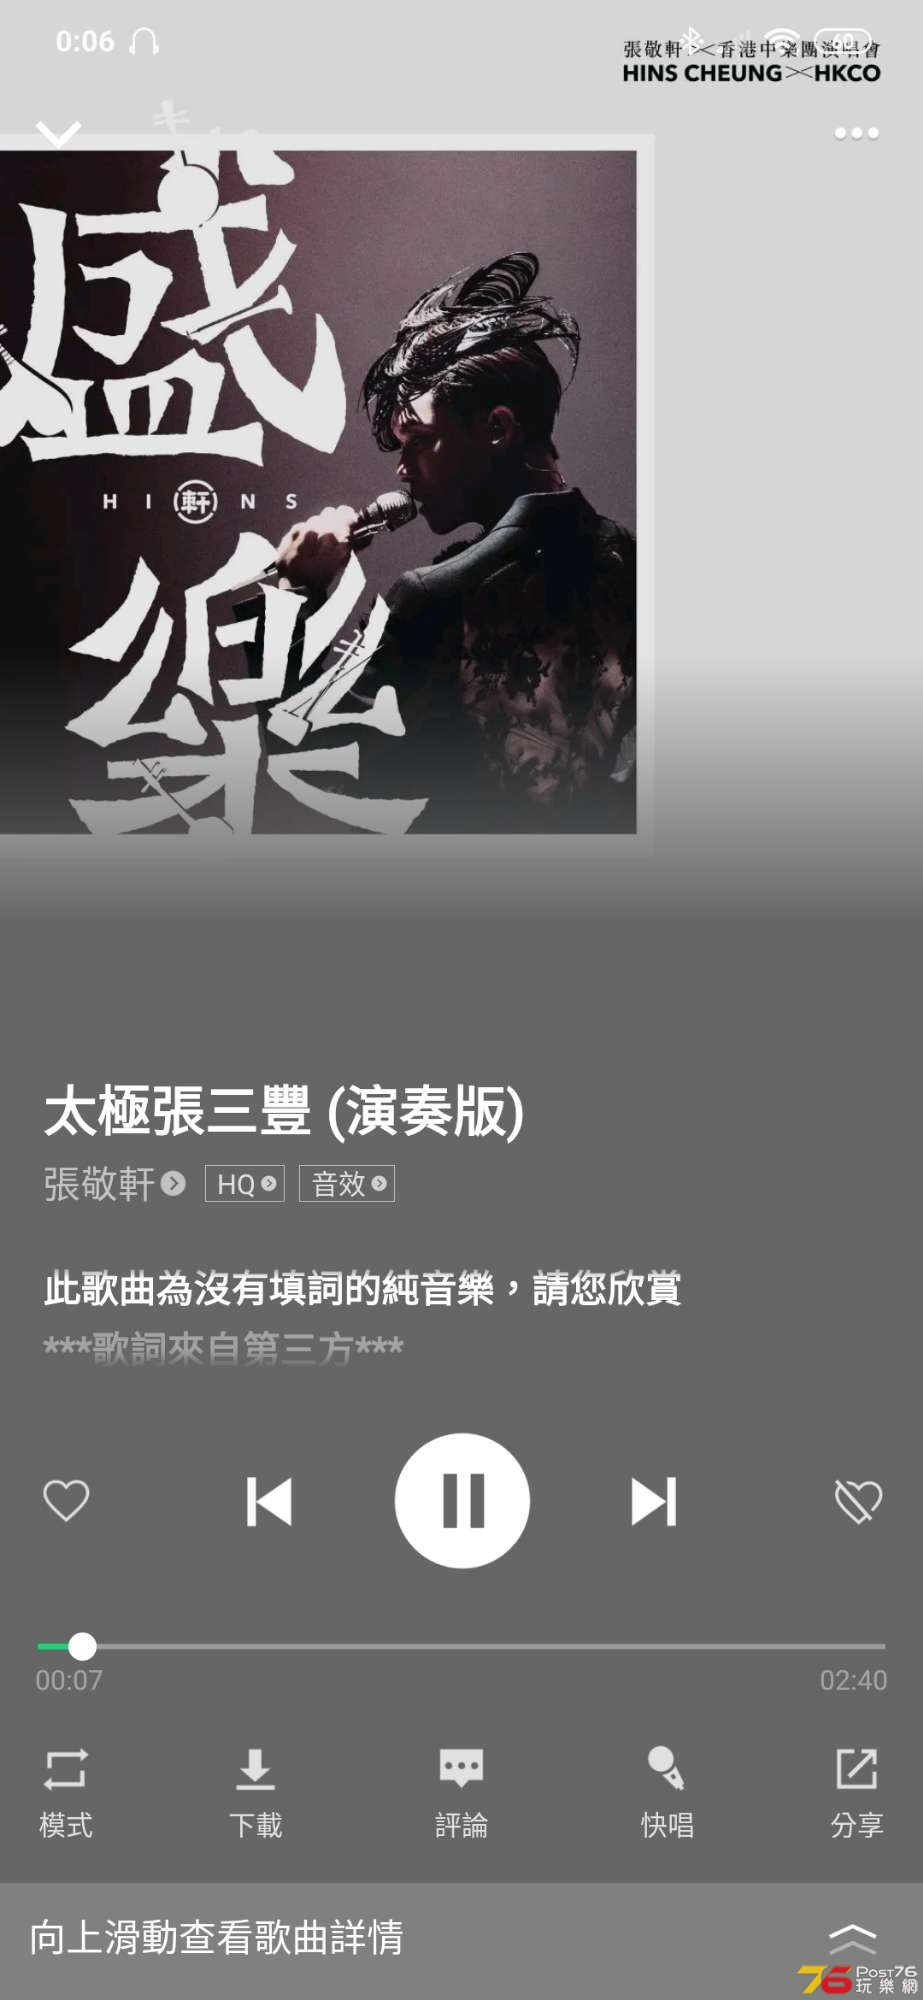 Screenshot_2021-02-18-00-06-48-573_com.tencent.ibg.joox.jpg